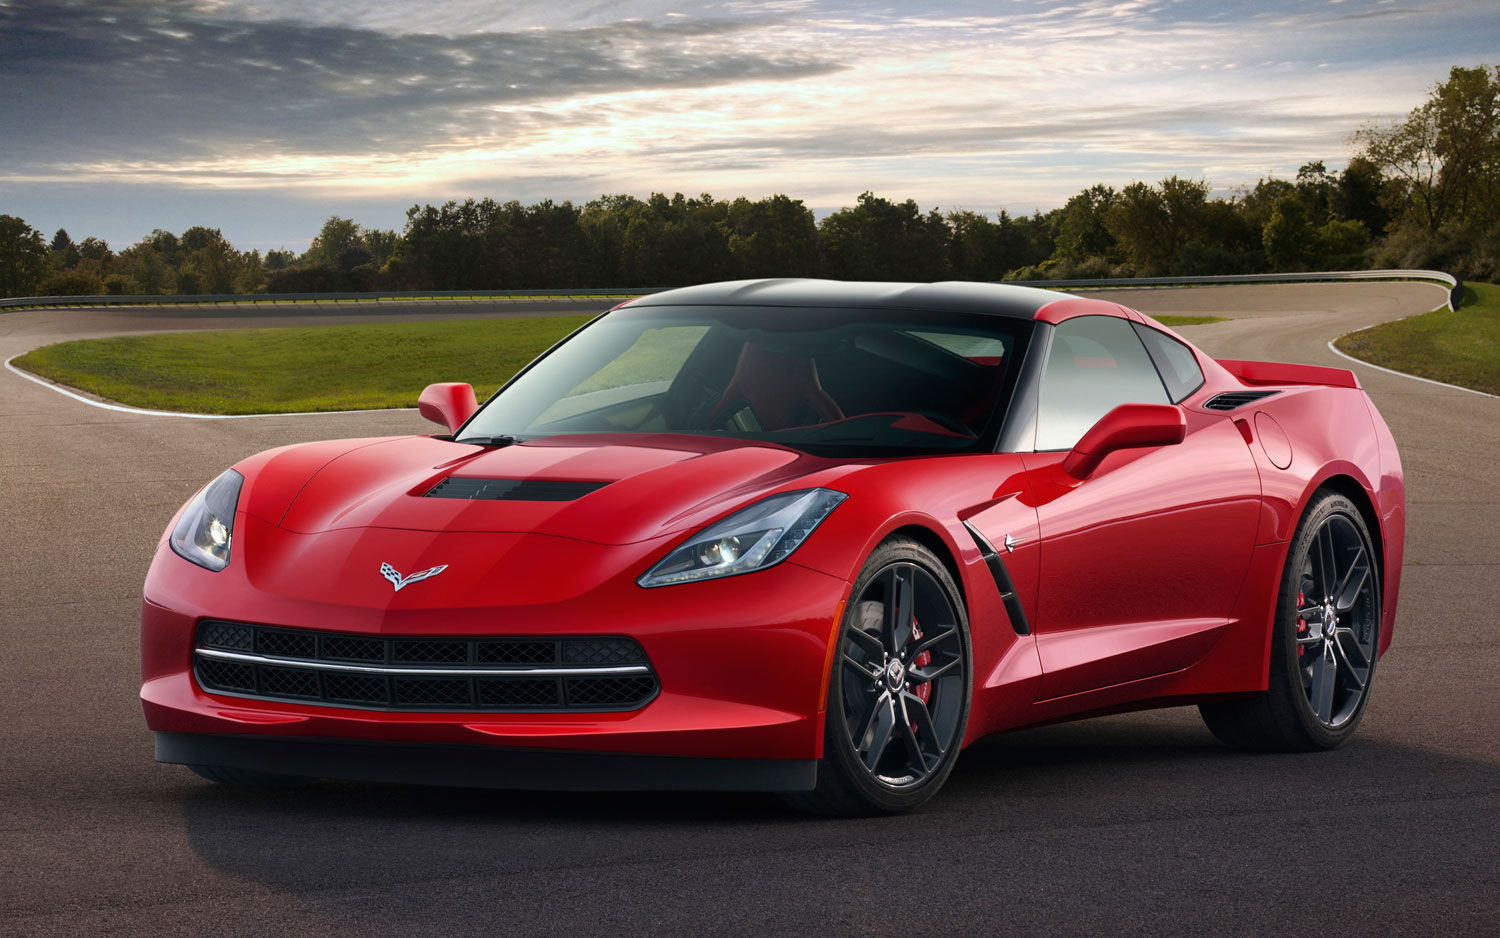 2014 Chevrolet Corvette Stingray Front Left Side1